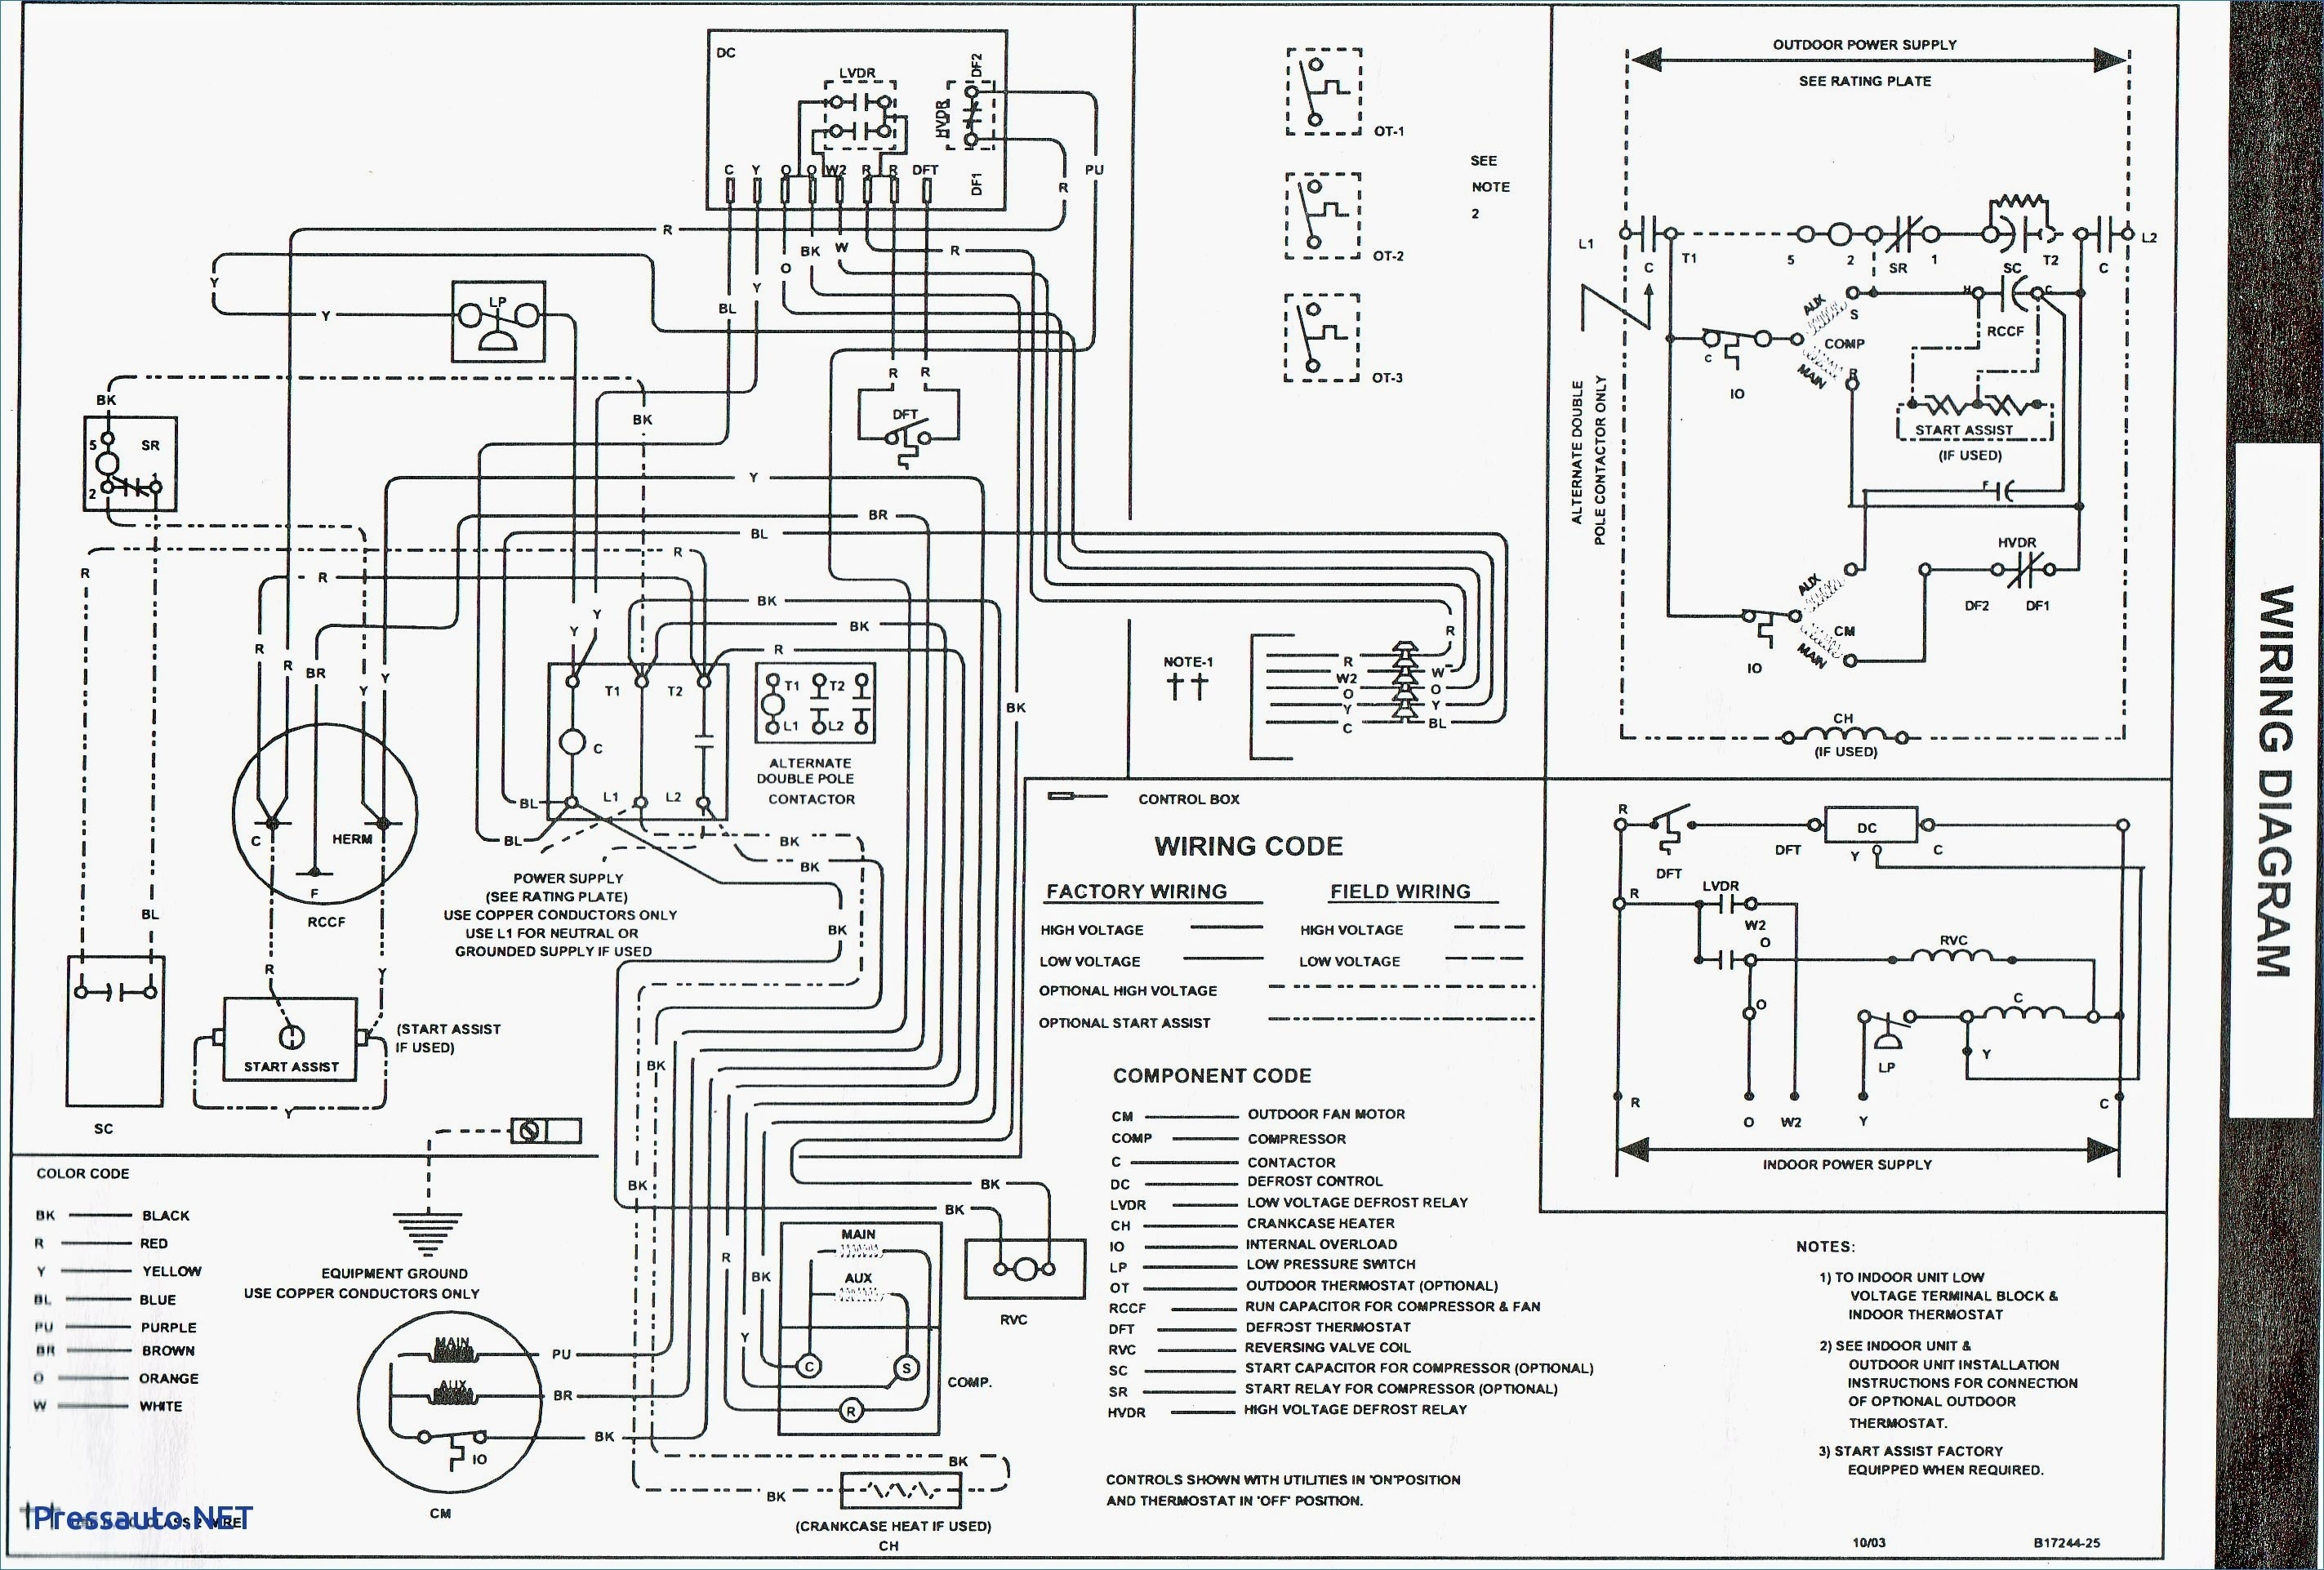 Home Heater Wire Diagram